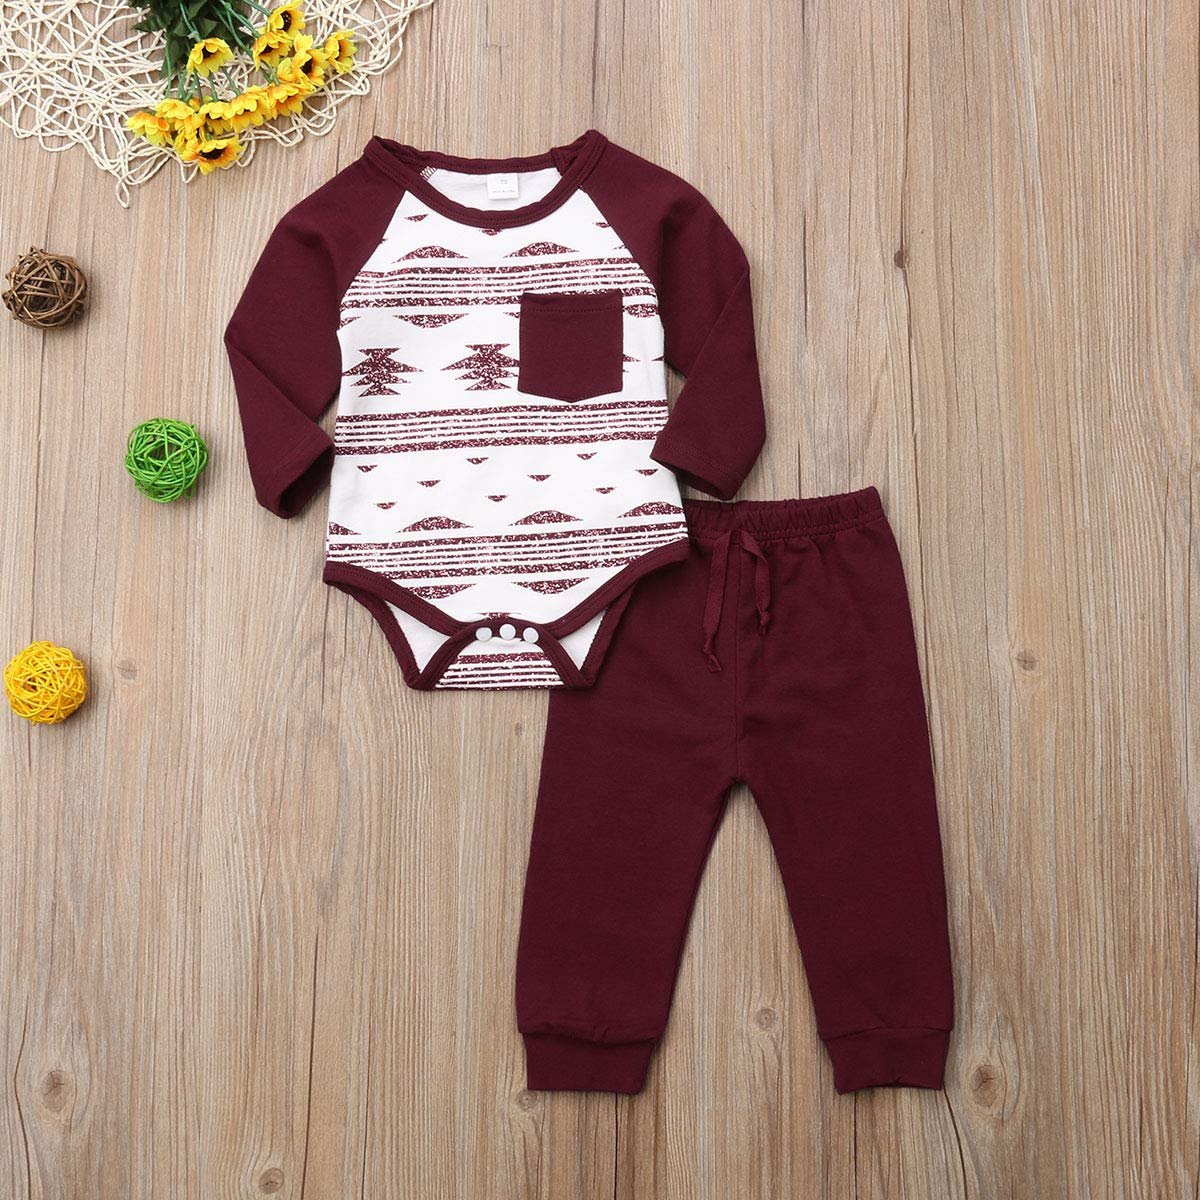 Newborn Baby 2PCs Romper Pants Set with Front Pocket Top Geometrics Legless Bodysuit Leggings Jogger Clothing Set